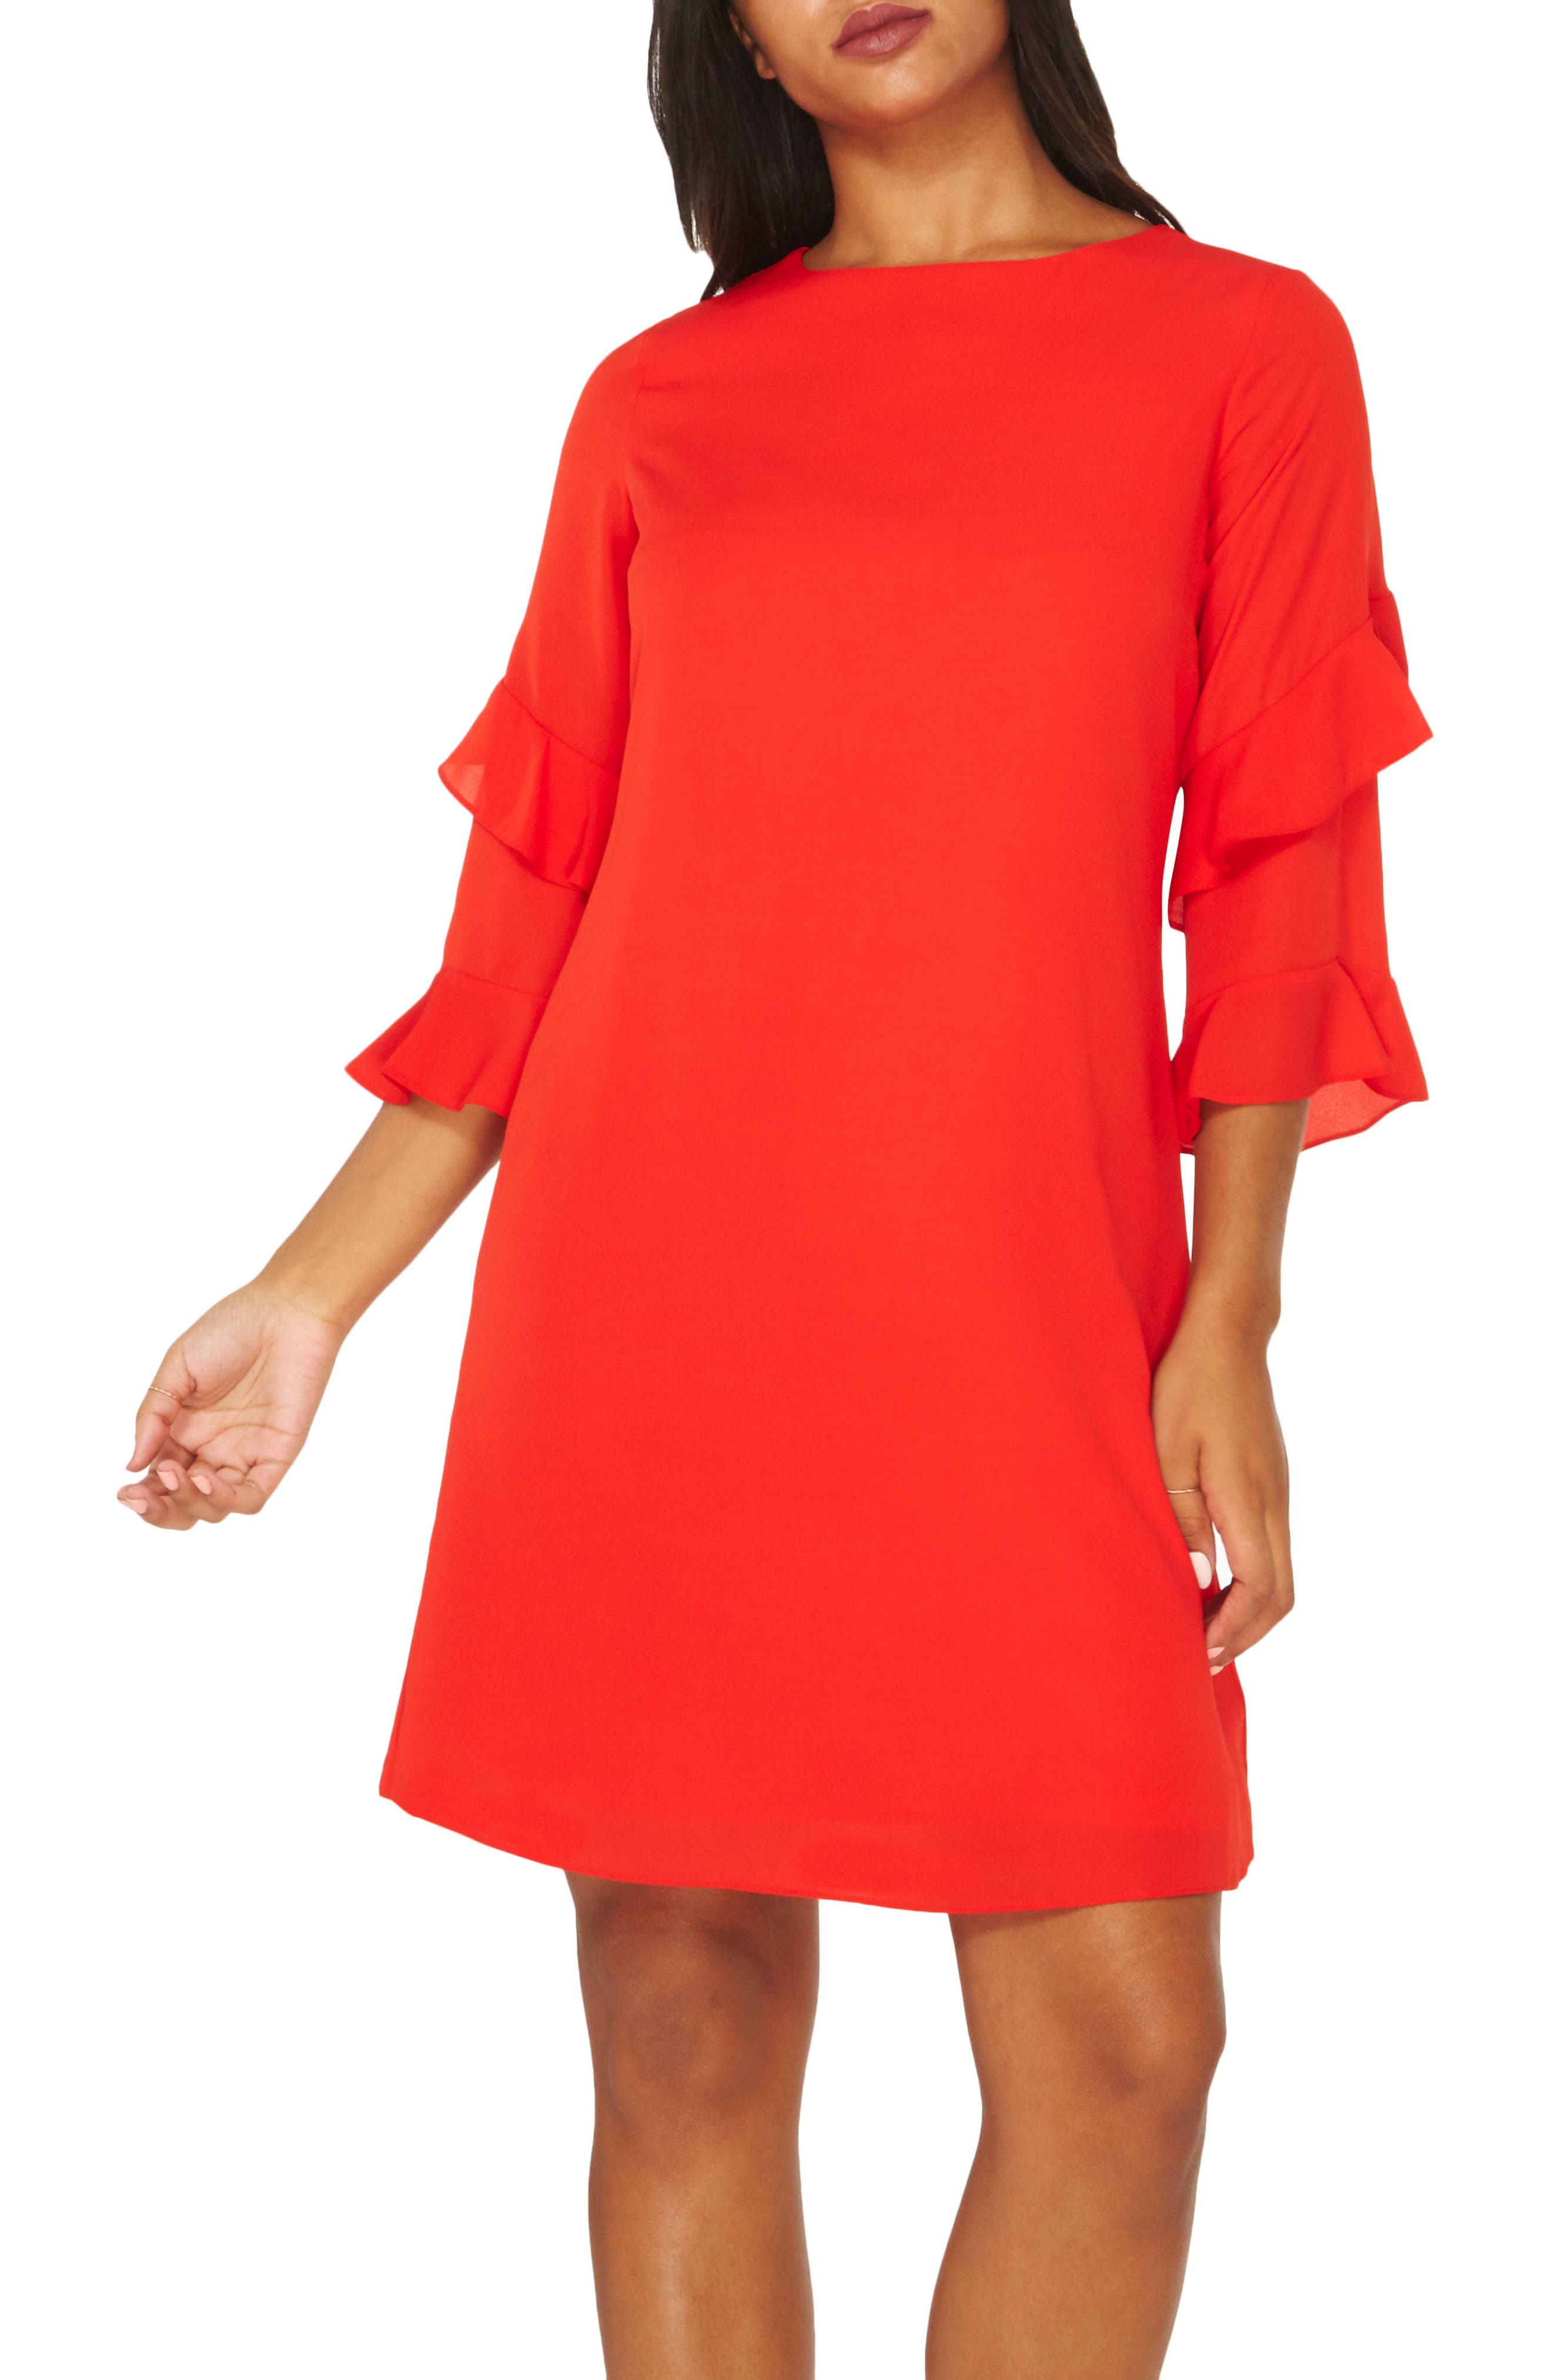 Alternate Image 1 Selected - Dorothy Perkins Ruffle Bell Sleeve Shift Dress